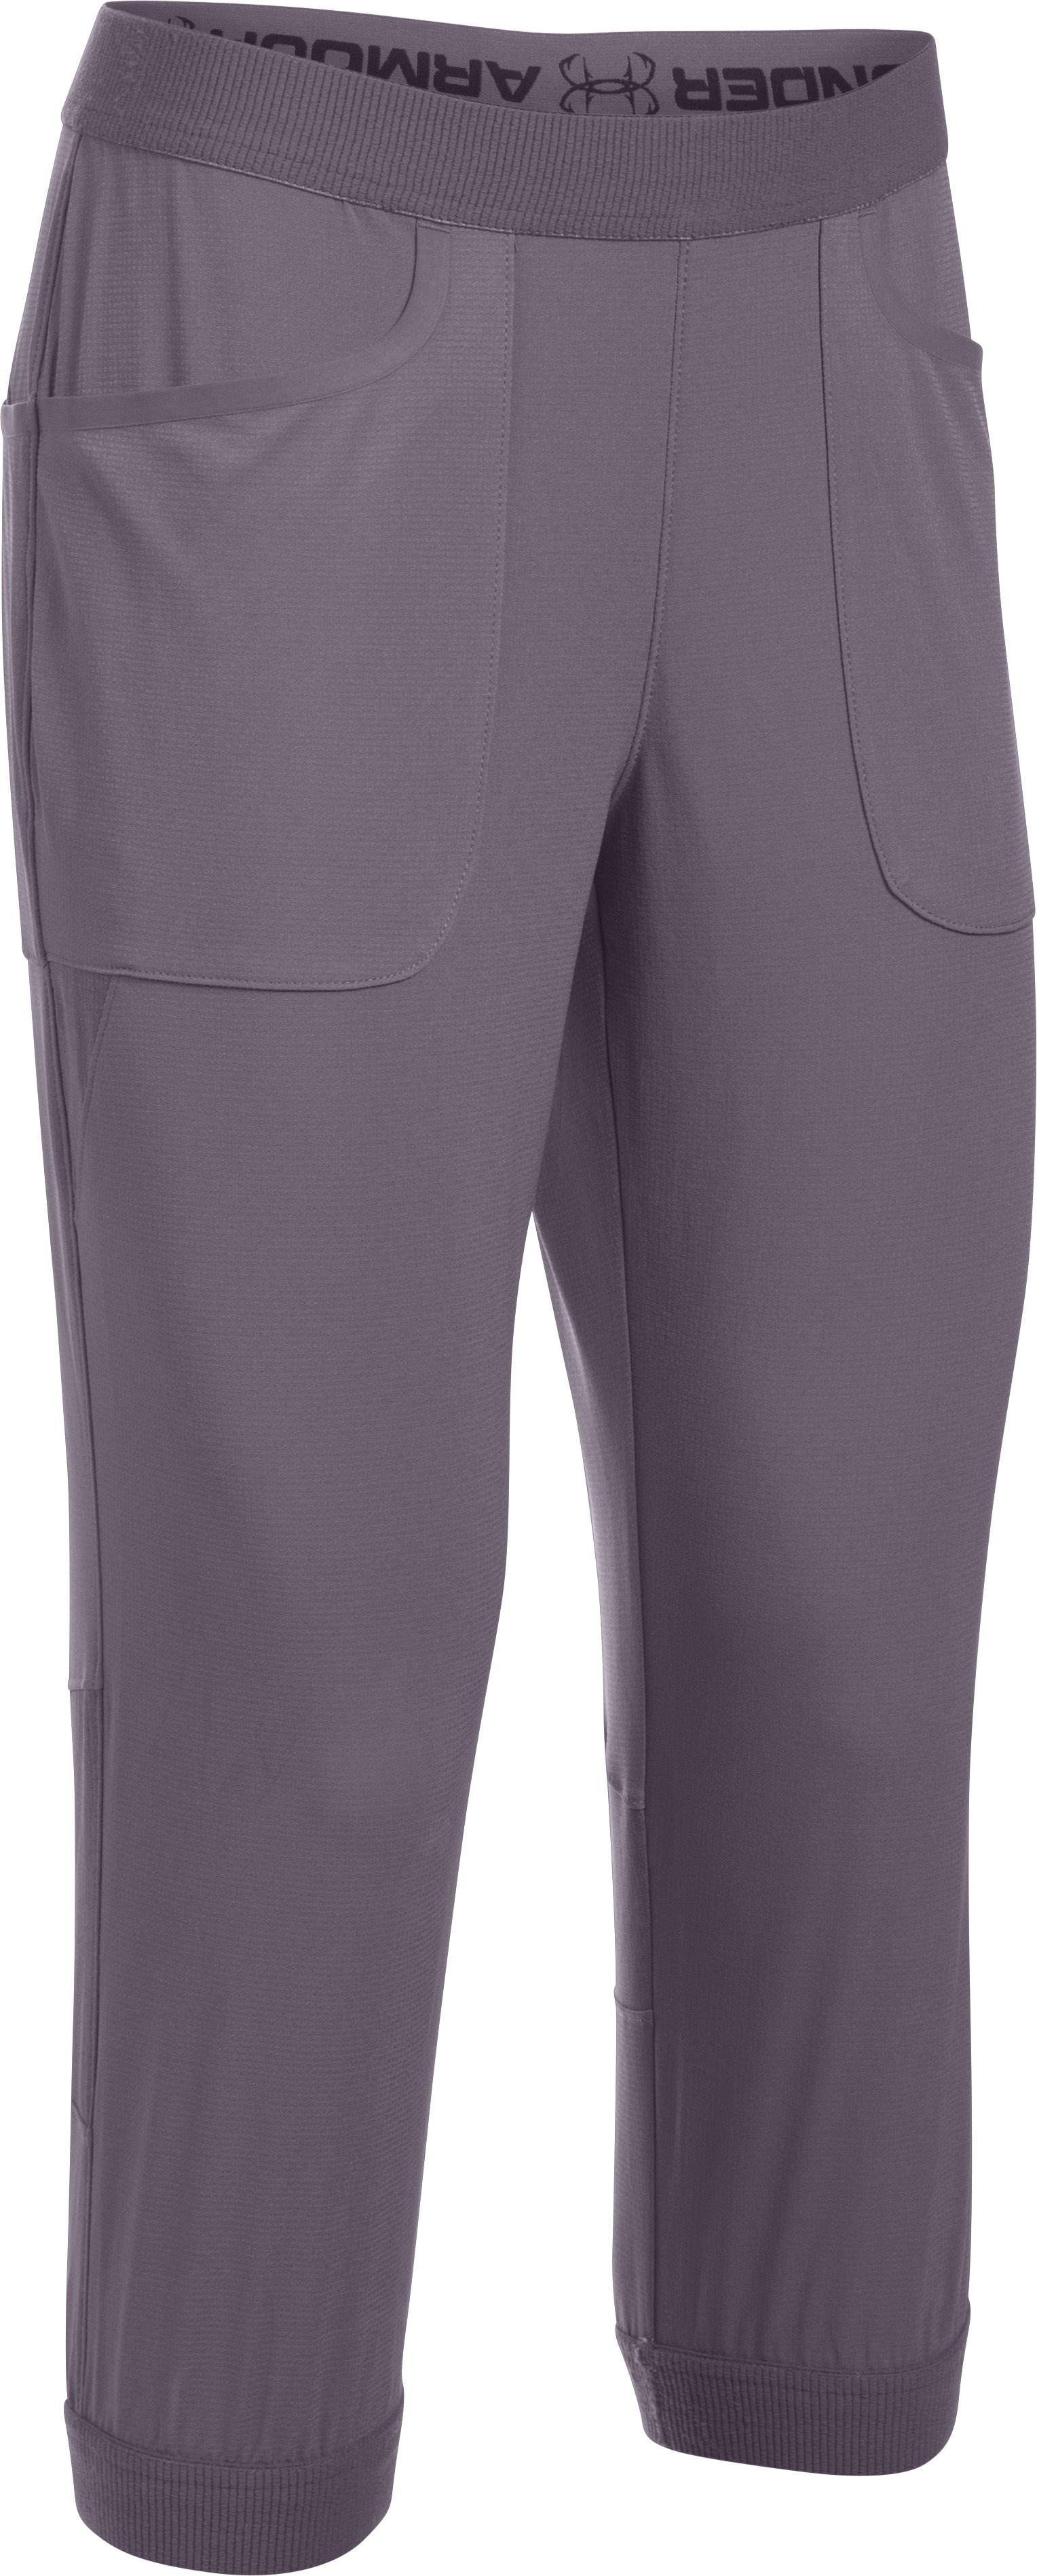 Women's UA ArmourVent™ Fishing Pants, FLINT,